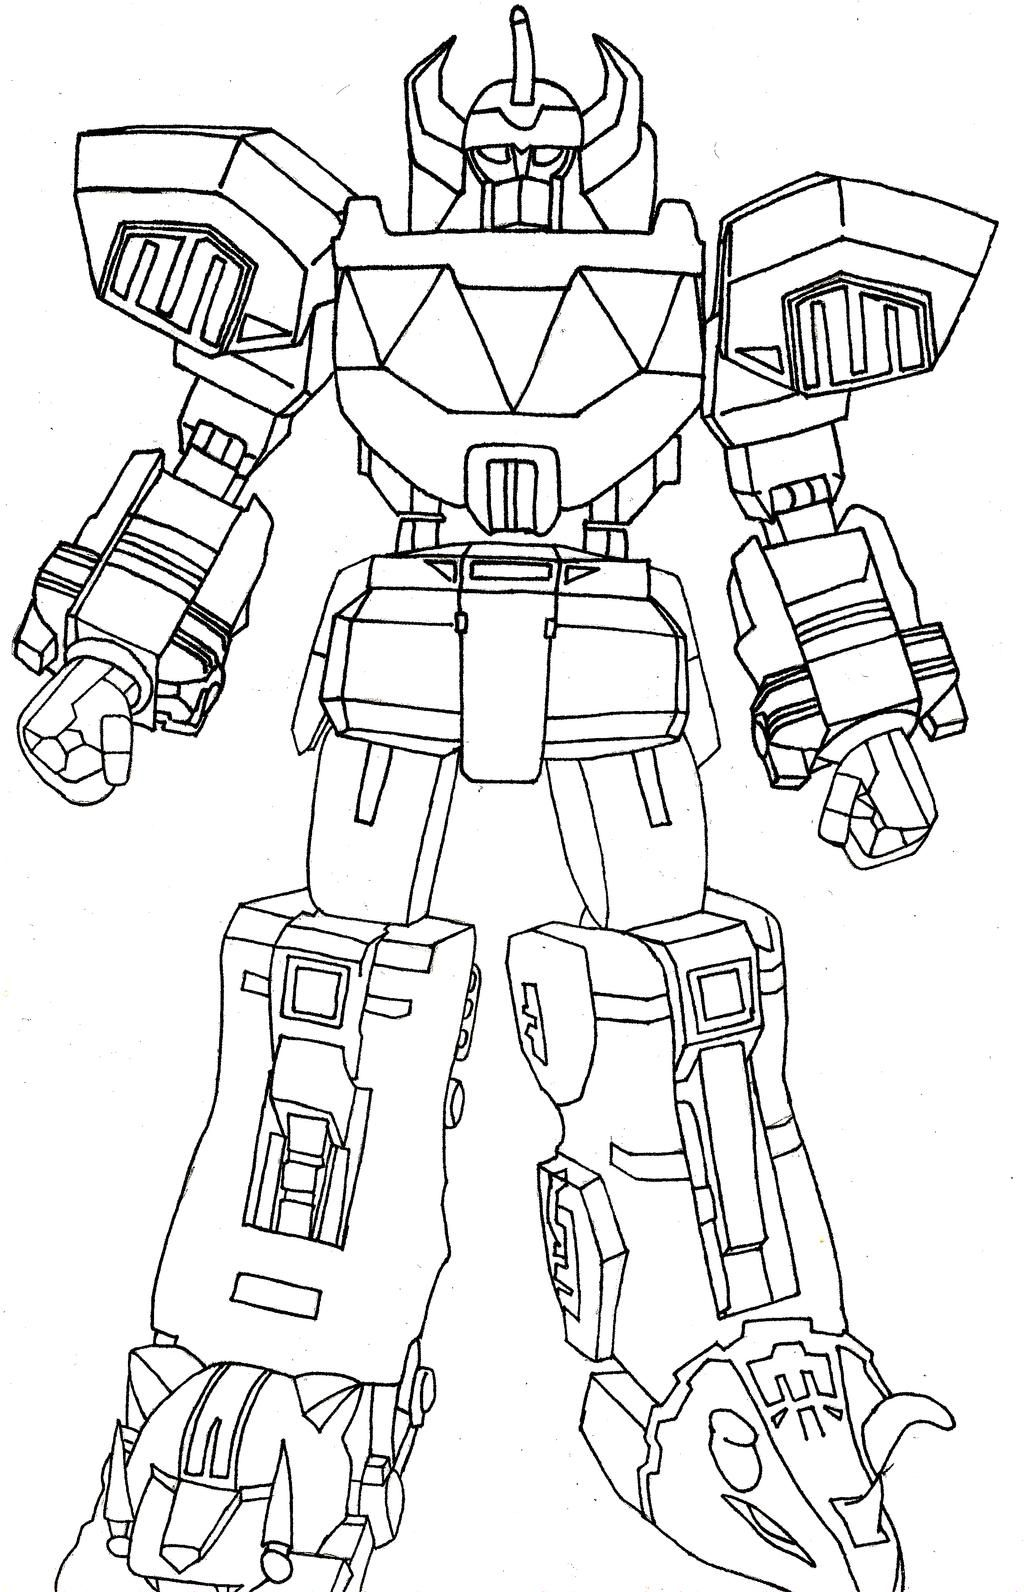 lego power rangers coloring pages free power ranger jungle fury coloring pages download power rangers pages coloring lego